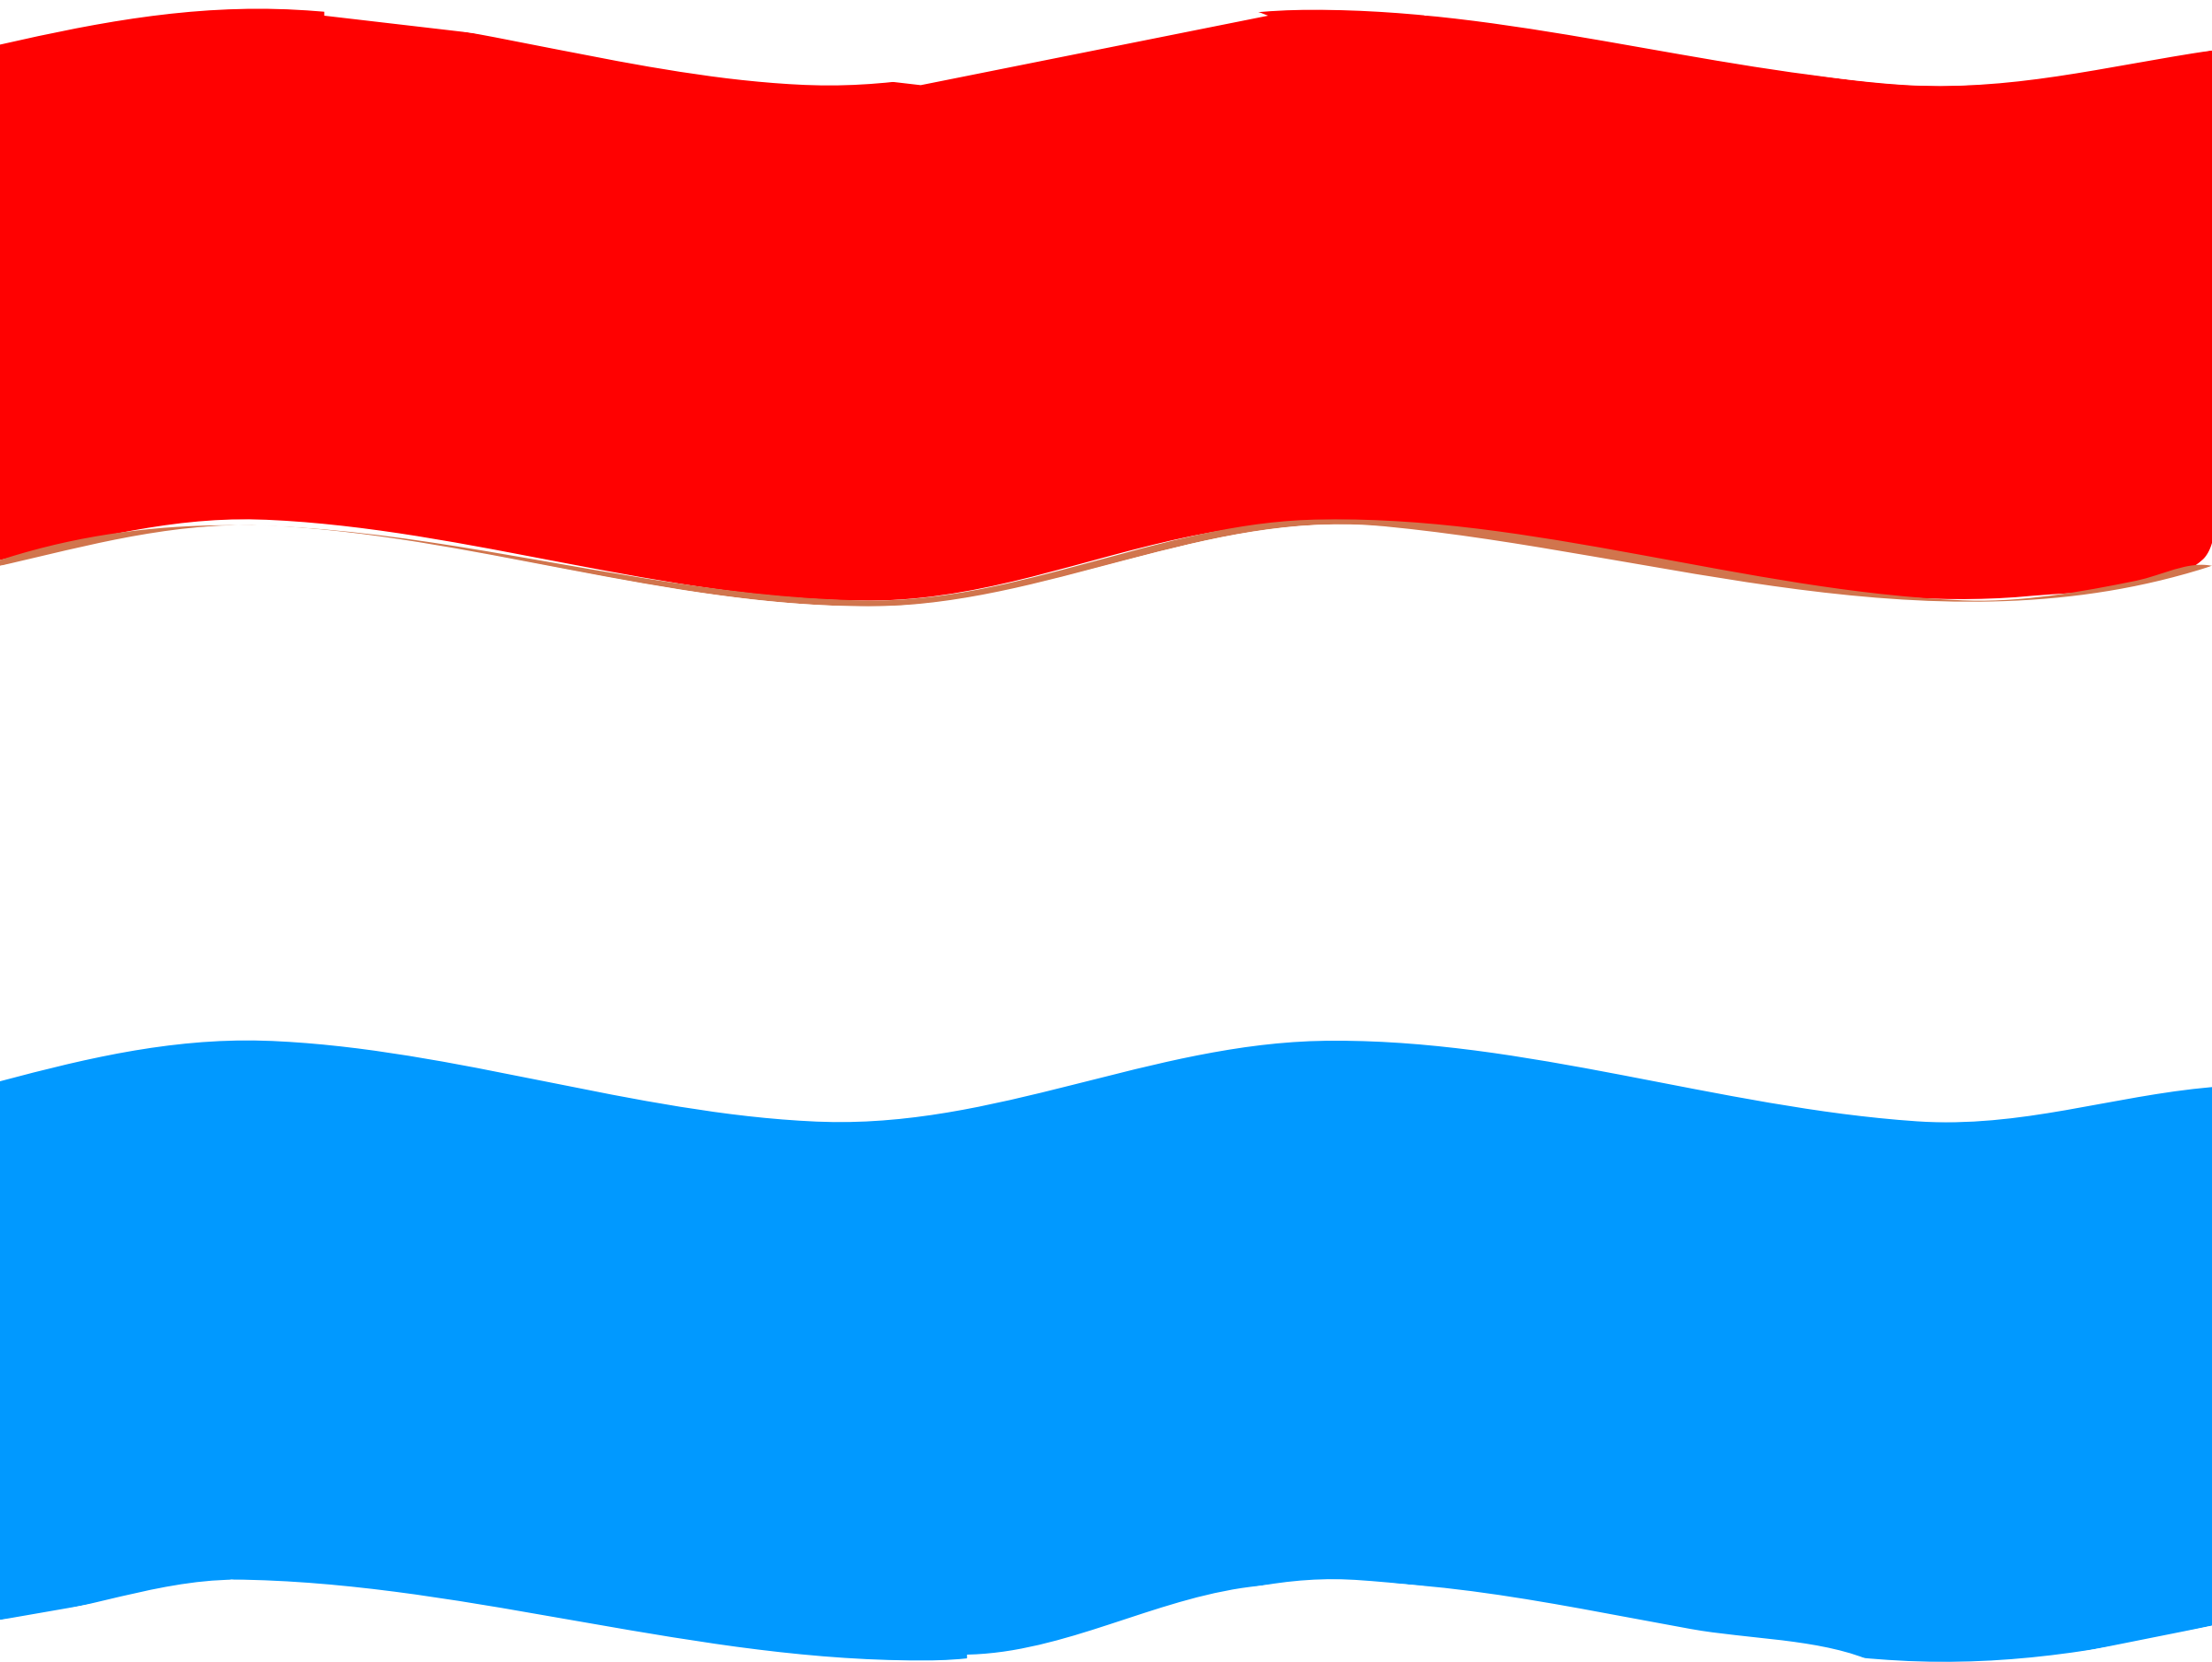 Flag of Luxemburg wave by Joesph